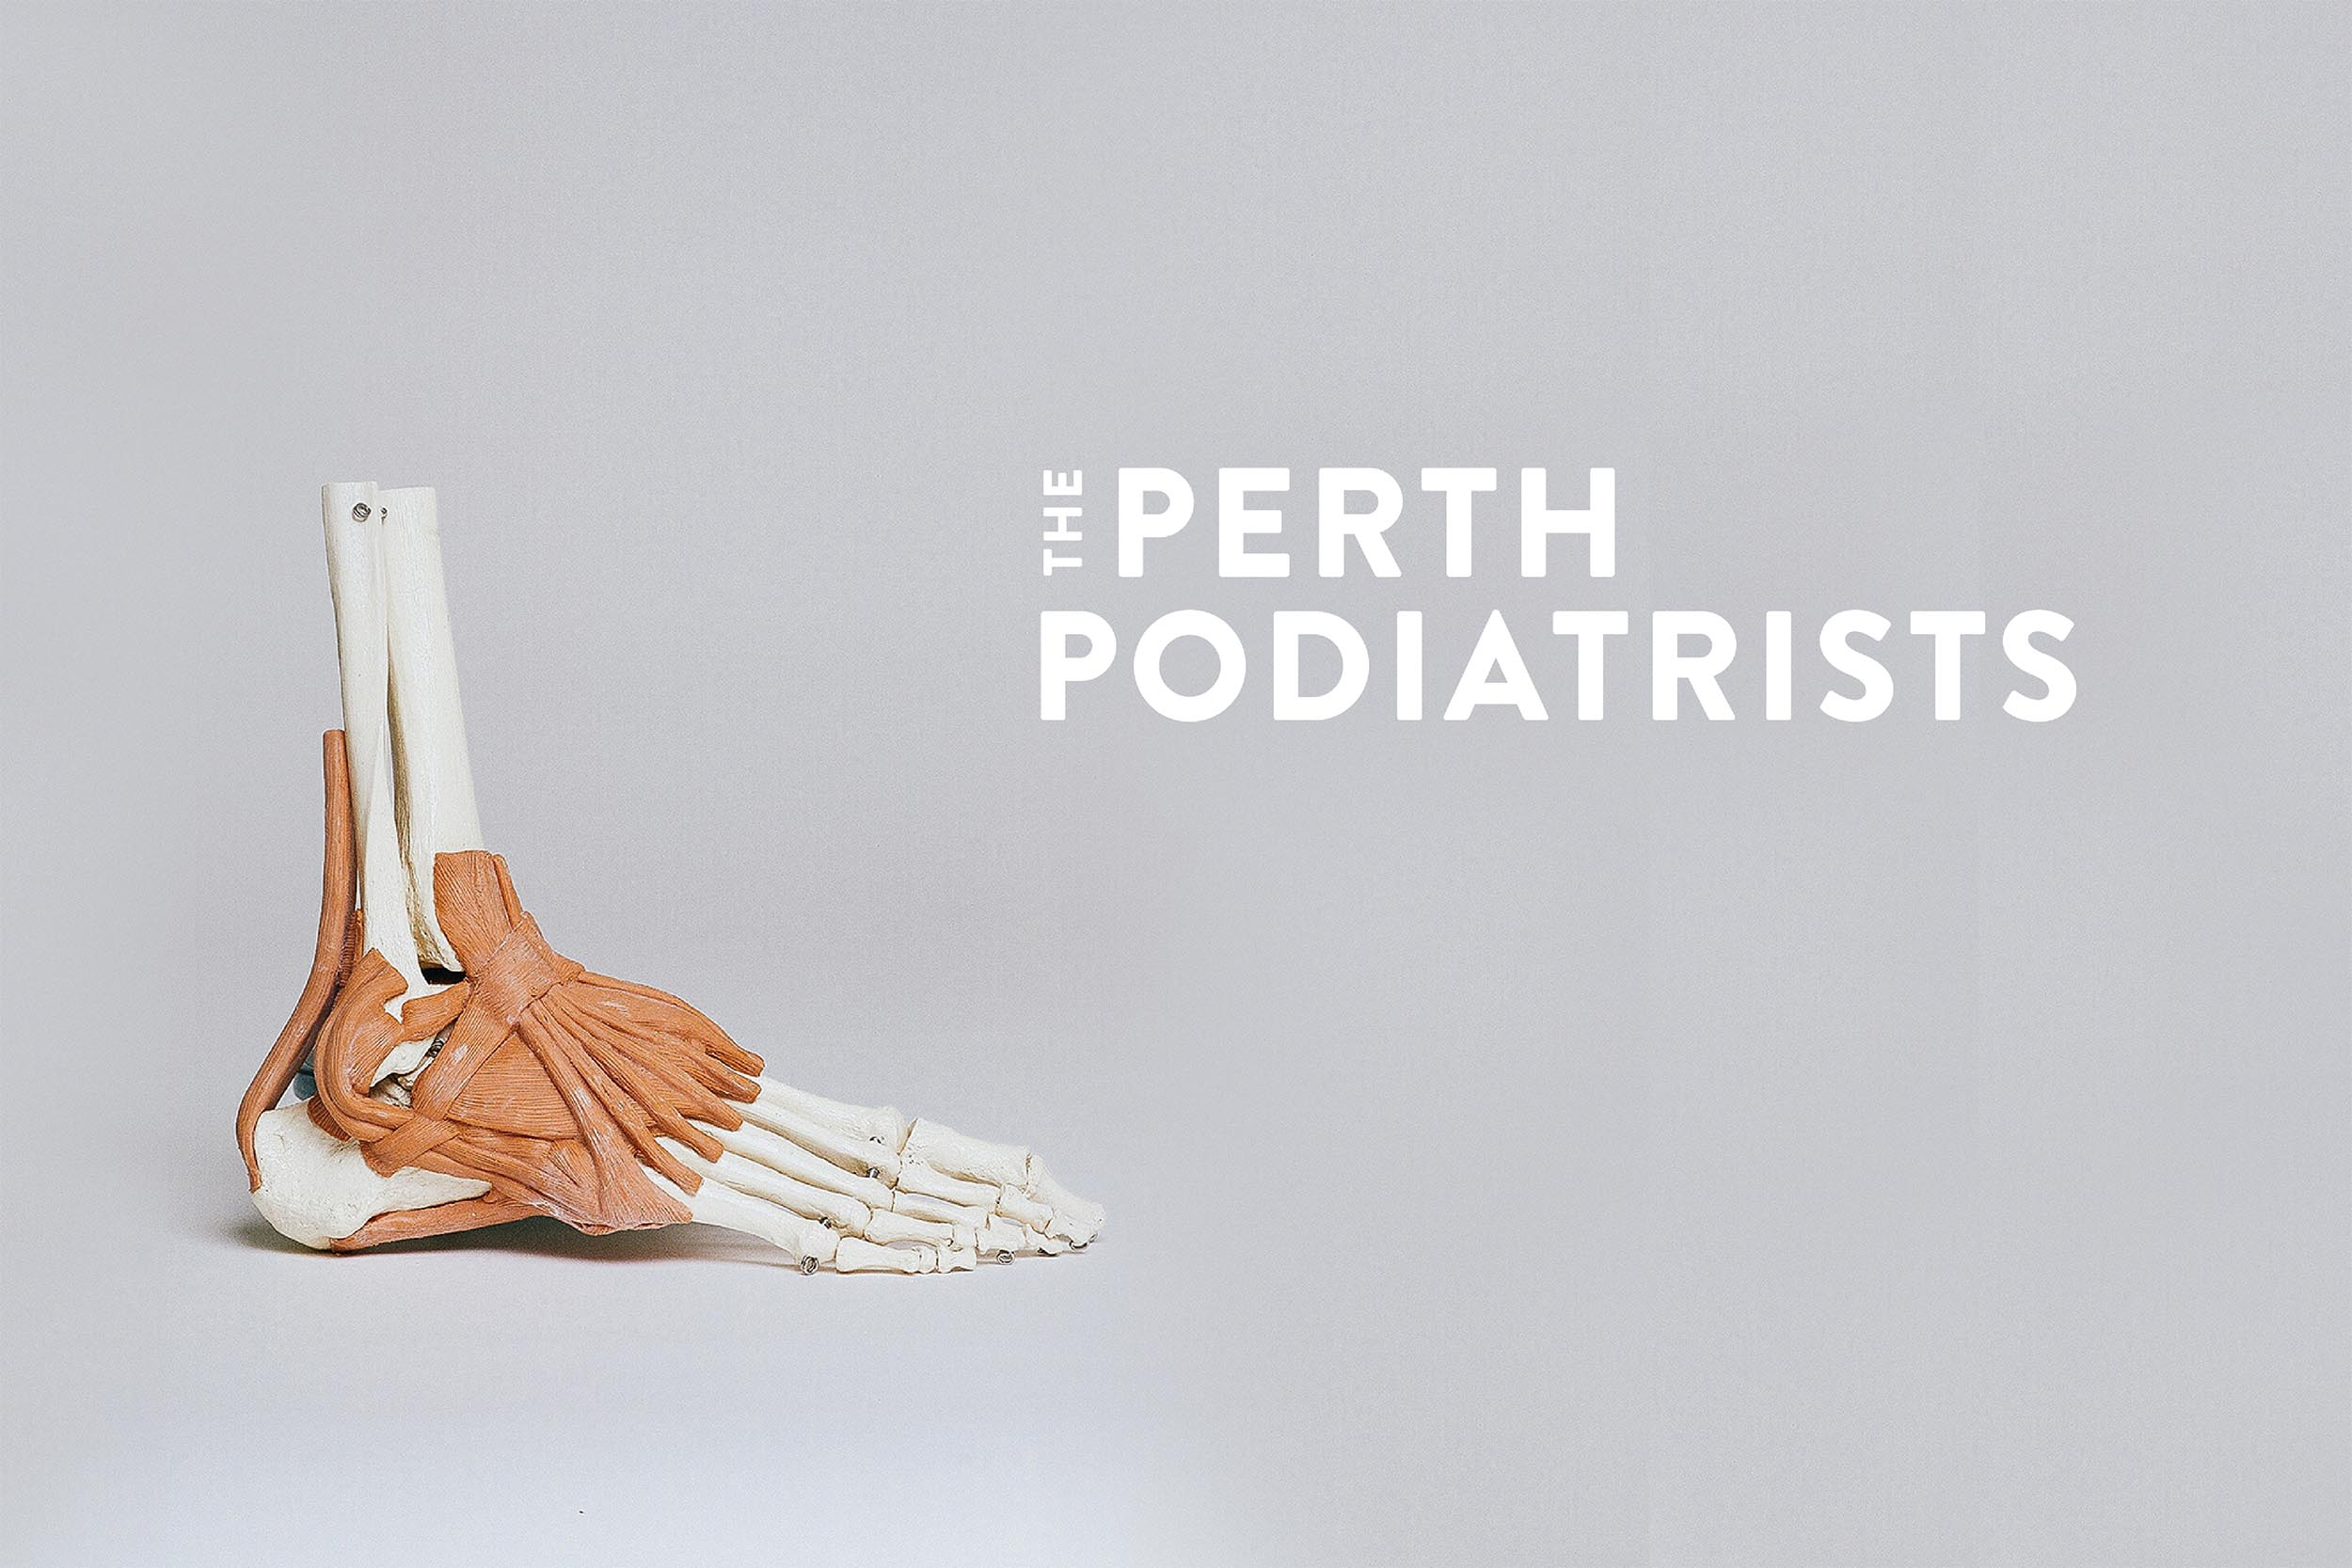 The-Perth-Podiatrist_Of-Note-Blog copy.jpg